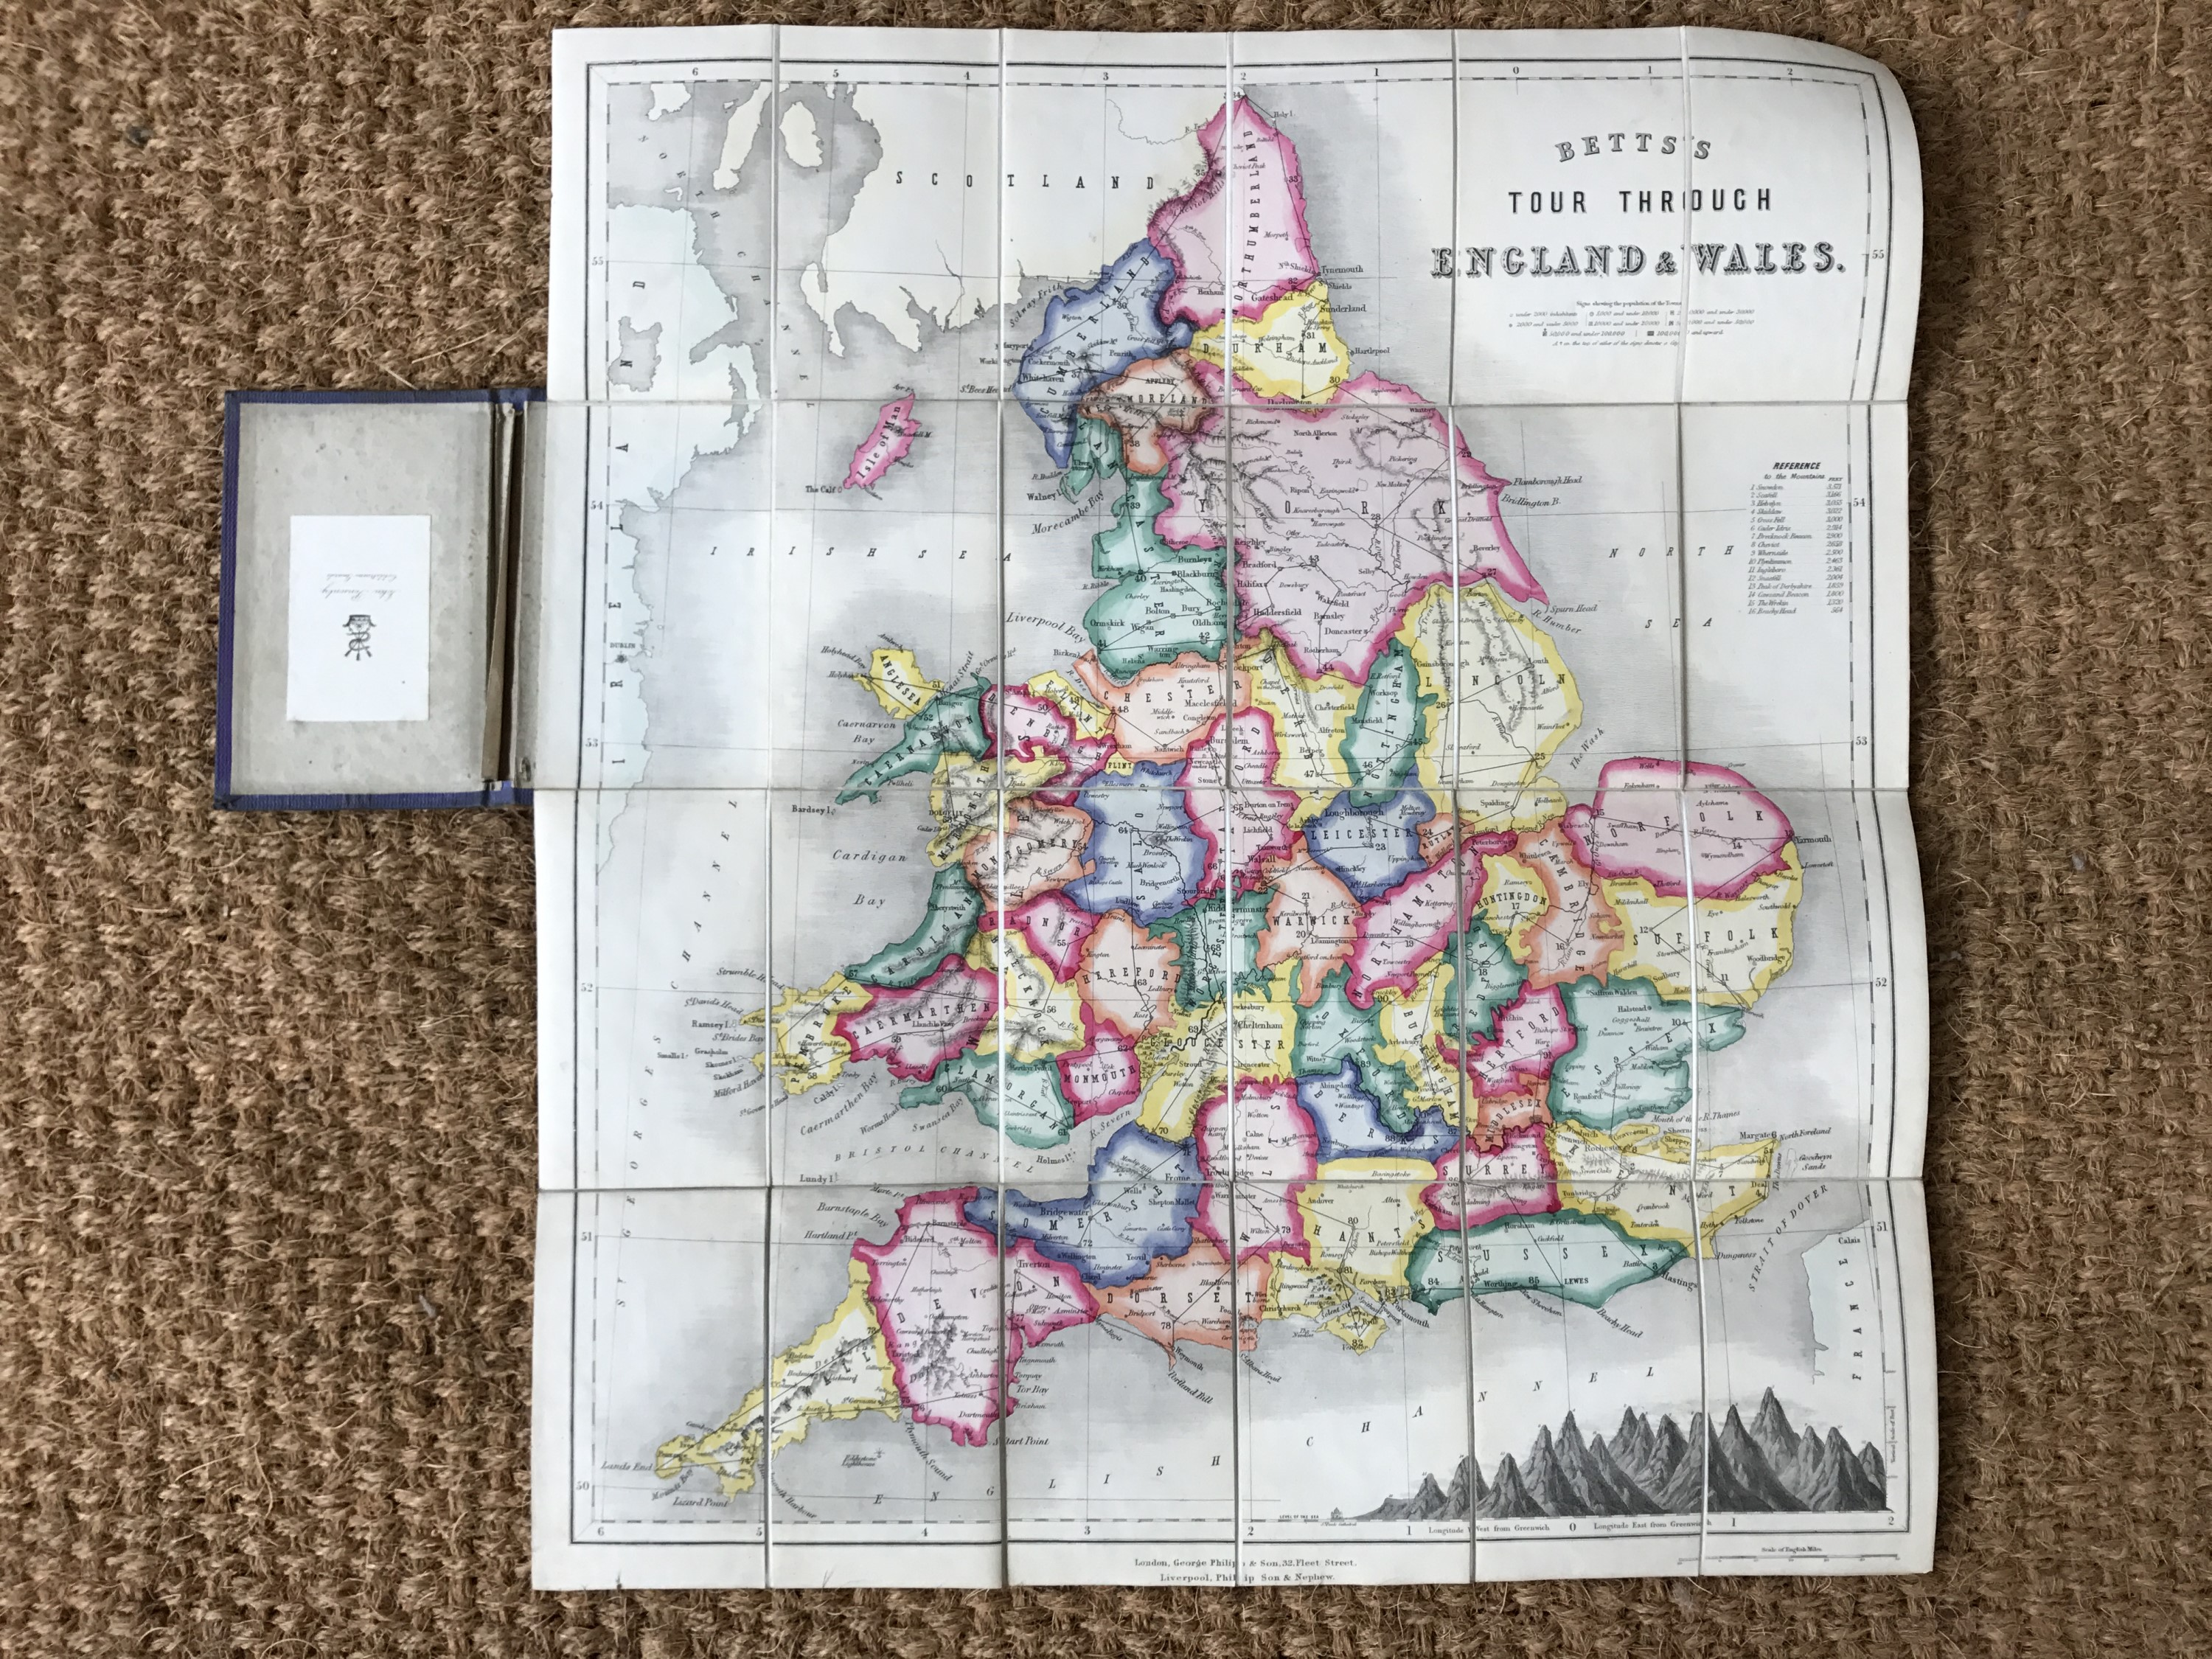 Lot 39 - Betts, John, Betts's , George Philip & Son, London, n.d, circa 1860, game map of the counties,